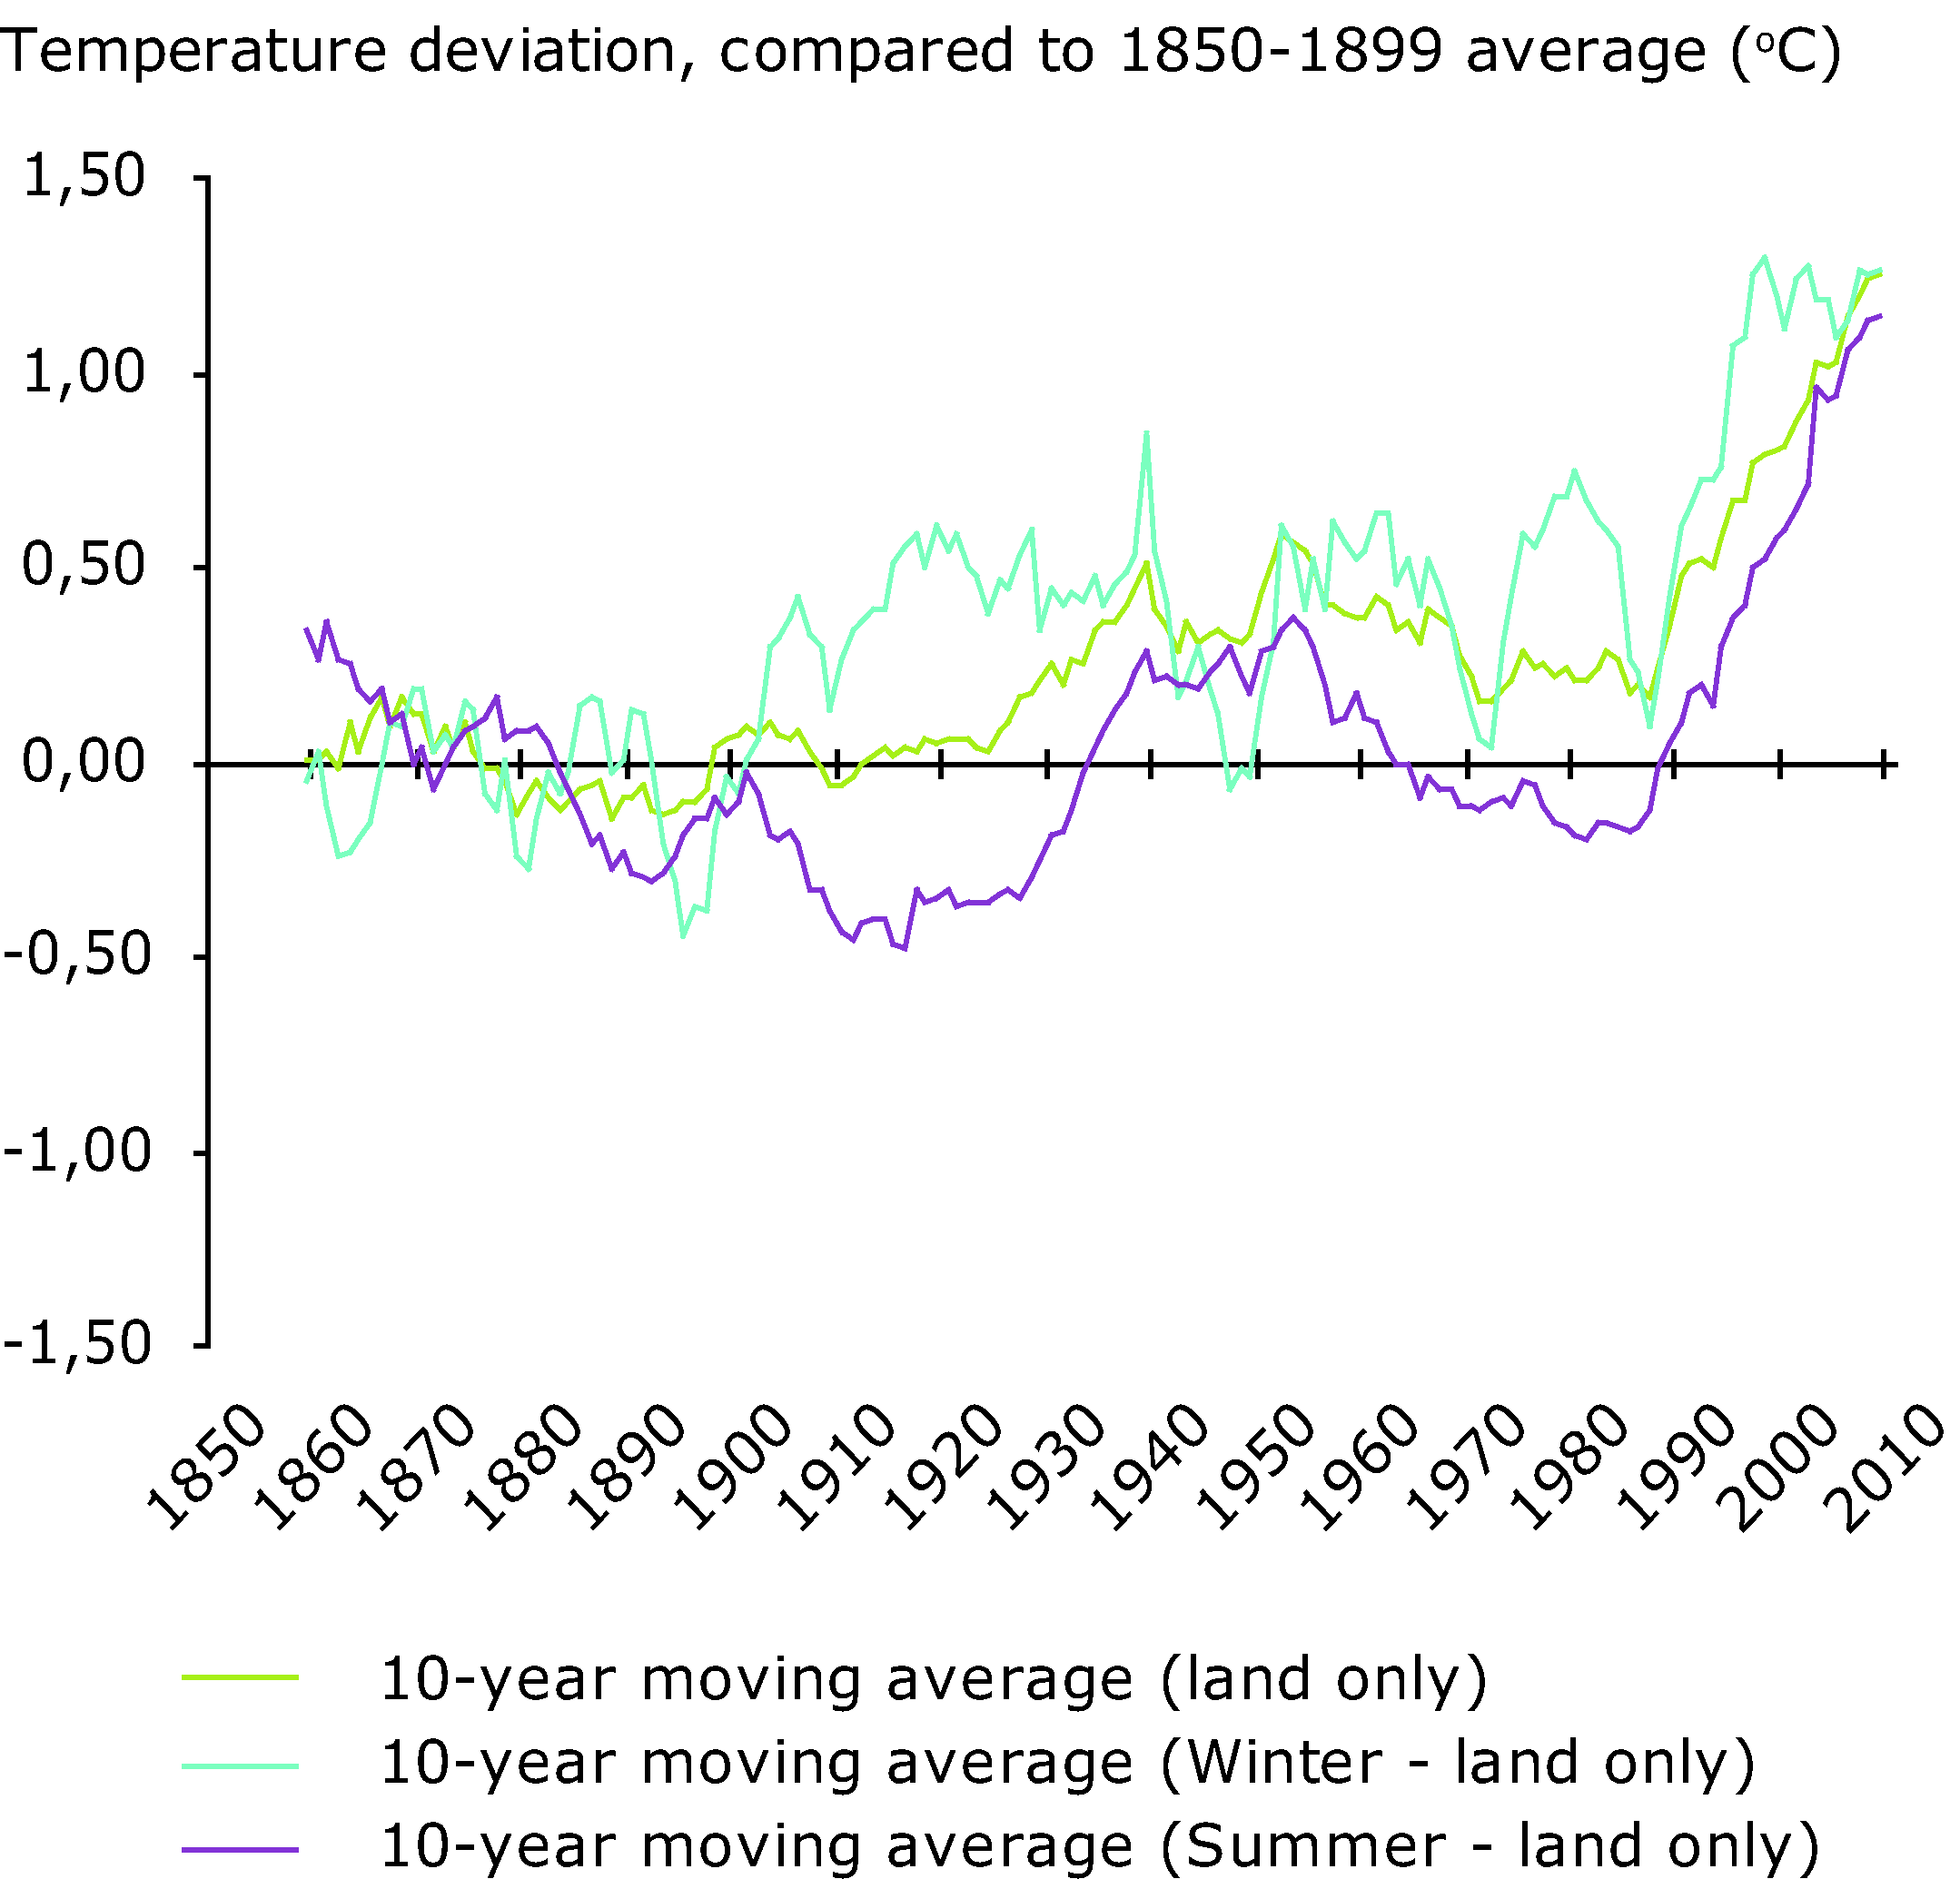 European annual, winter (December, January, February) and summer (June, July, August) mean temperature deviations, 1860-2009 (ºC)